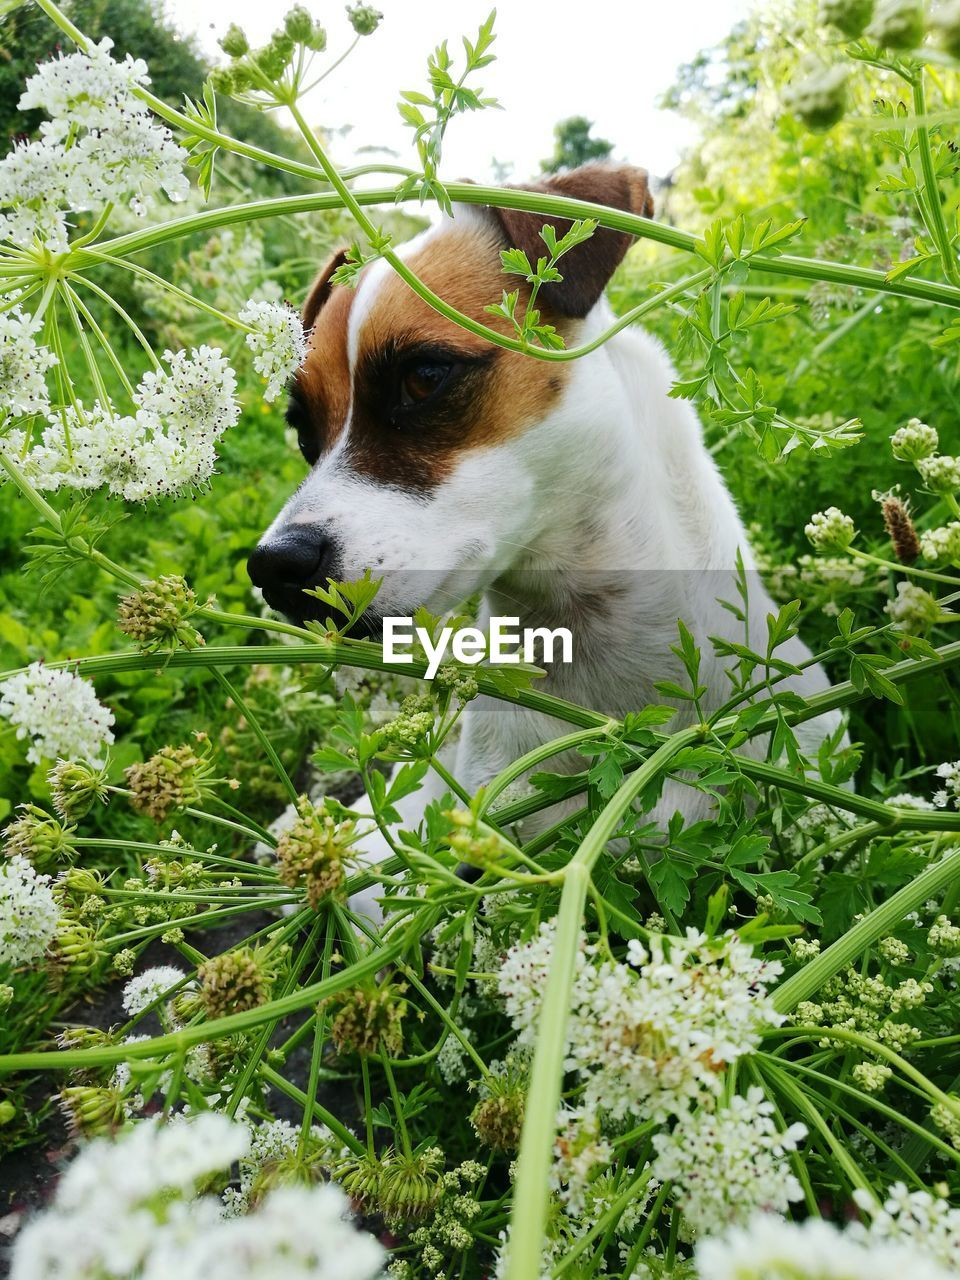 dog, one animal, pets, domestic animals, animal themes, mammal, plant, green color, leaf, day, outdoors, grass, growth, no people, nature, close-up, tree, beagle